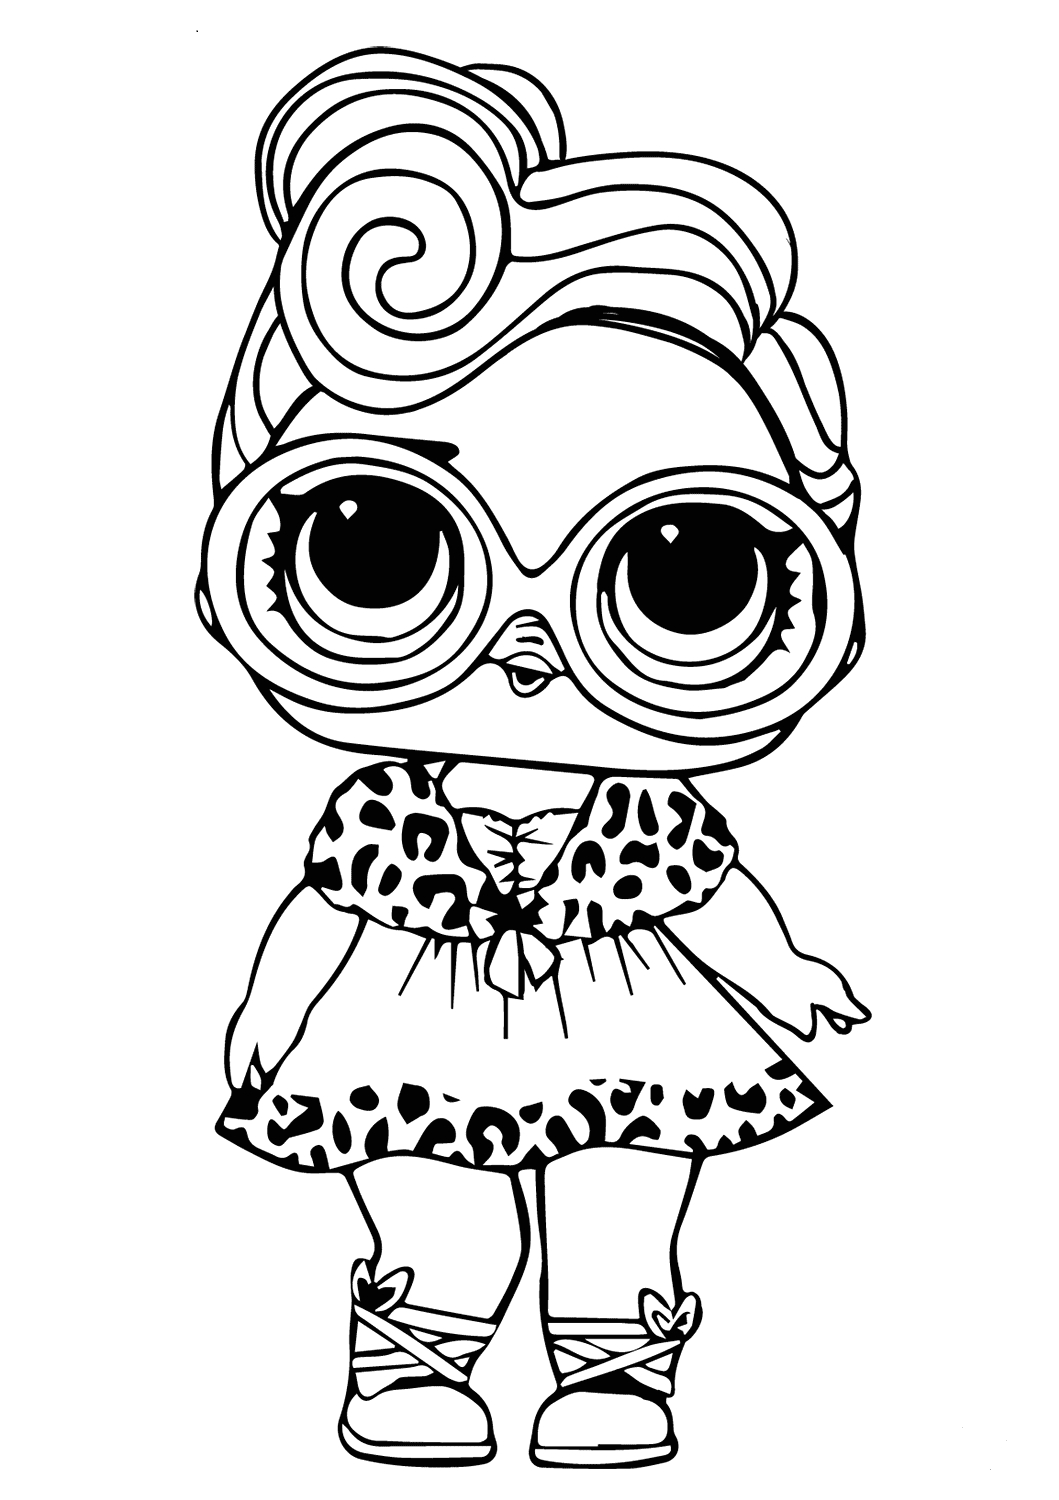 Lol Coloring Pages that You Can Print 30 Free Printable Lol Surprise Doll Coloring Pages